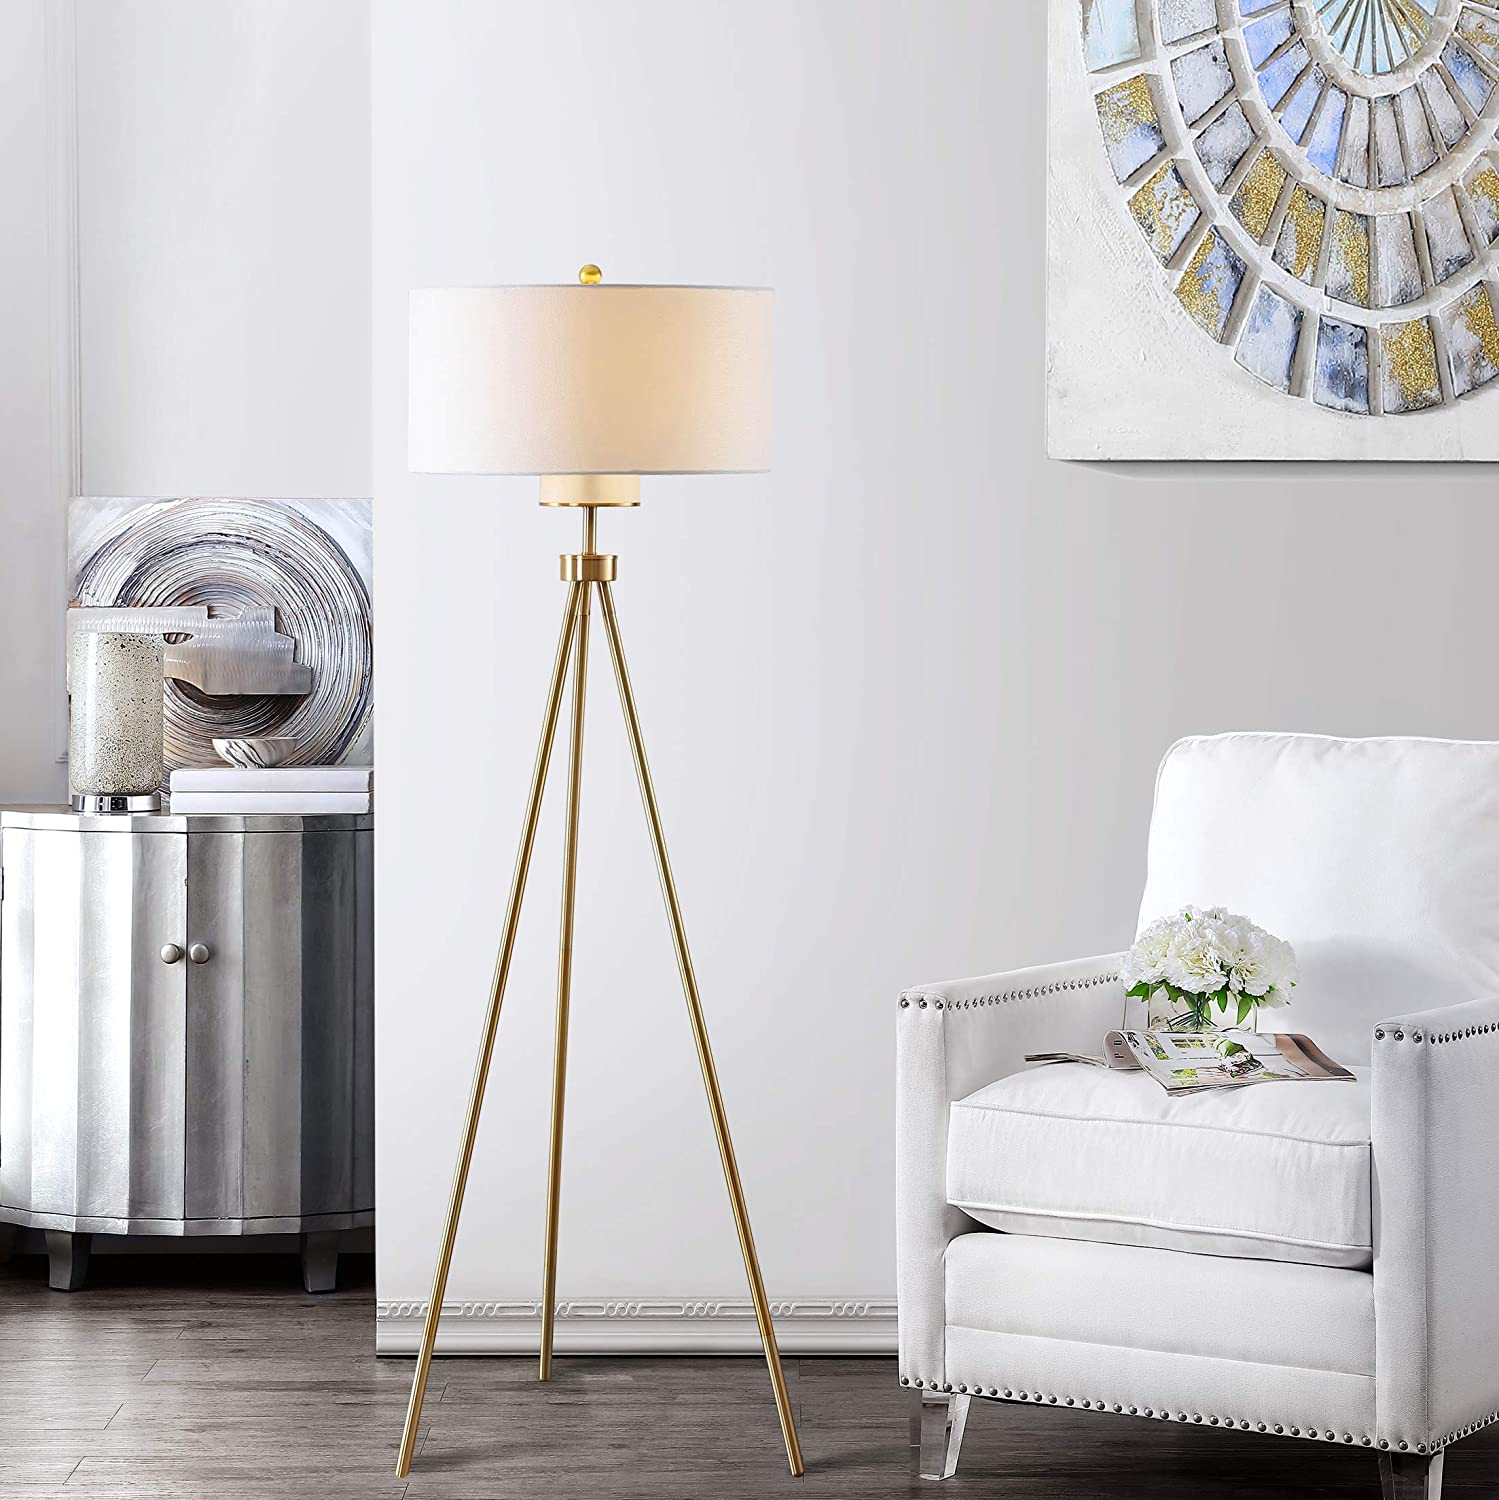 Safavieh Fll4008a Lighting Collection Enrica 66 Brass And Gold Floor Lamp Amazon Com